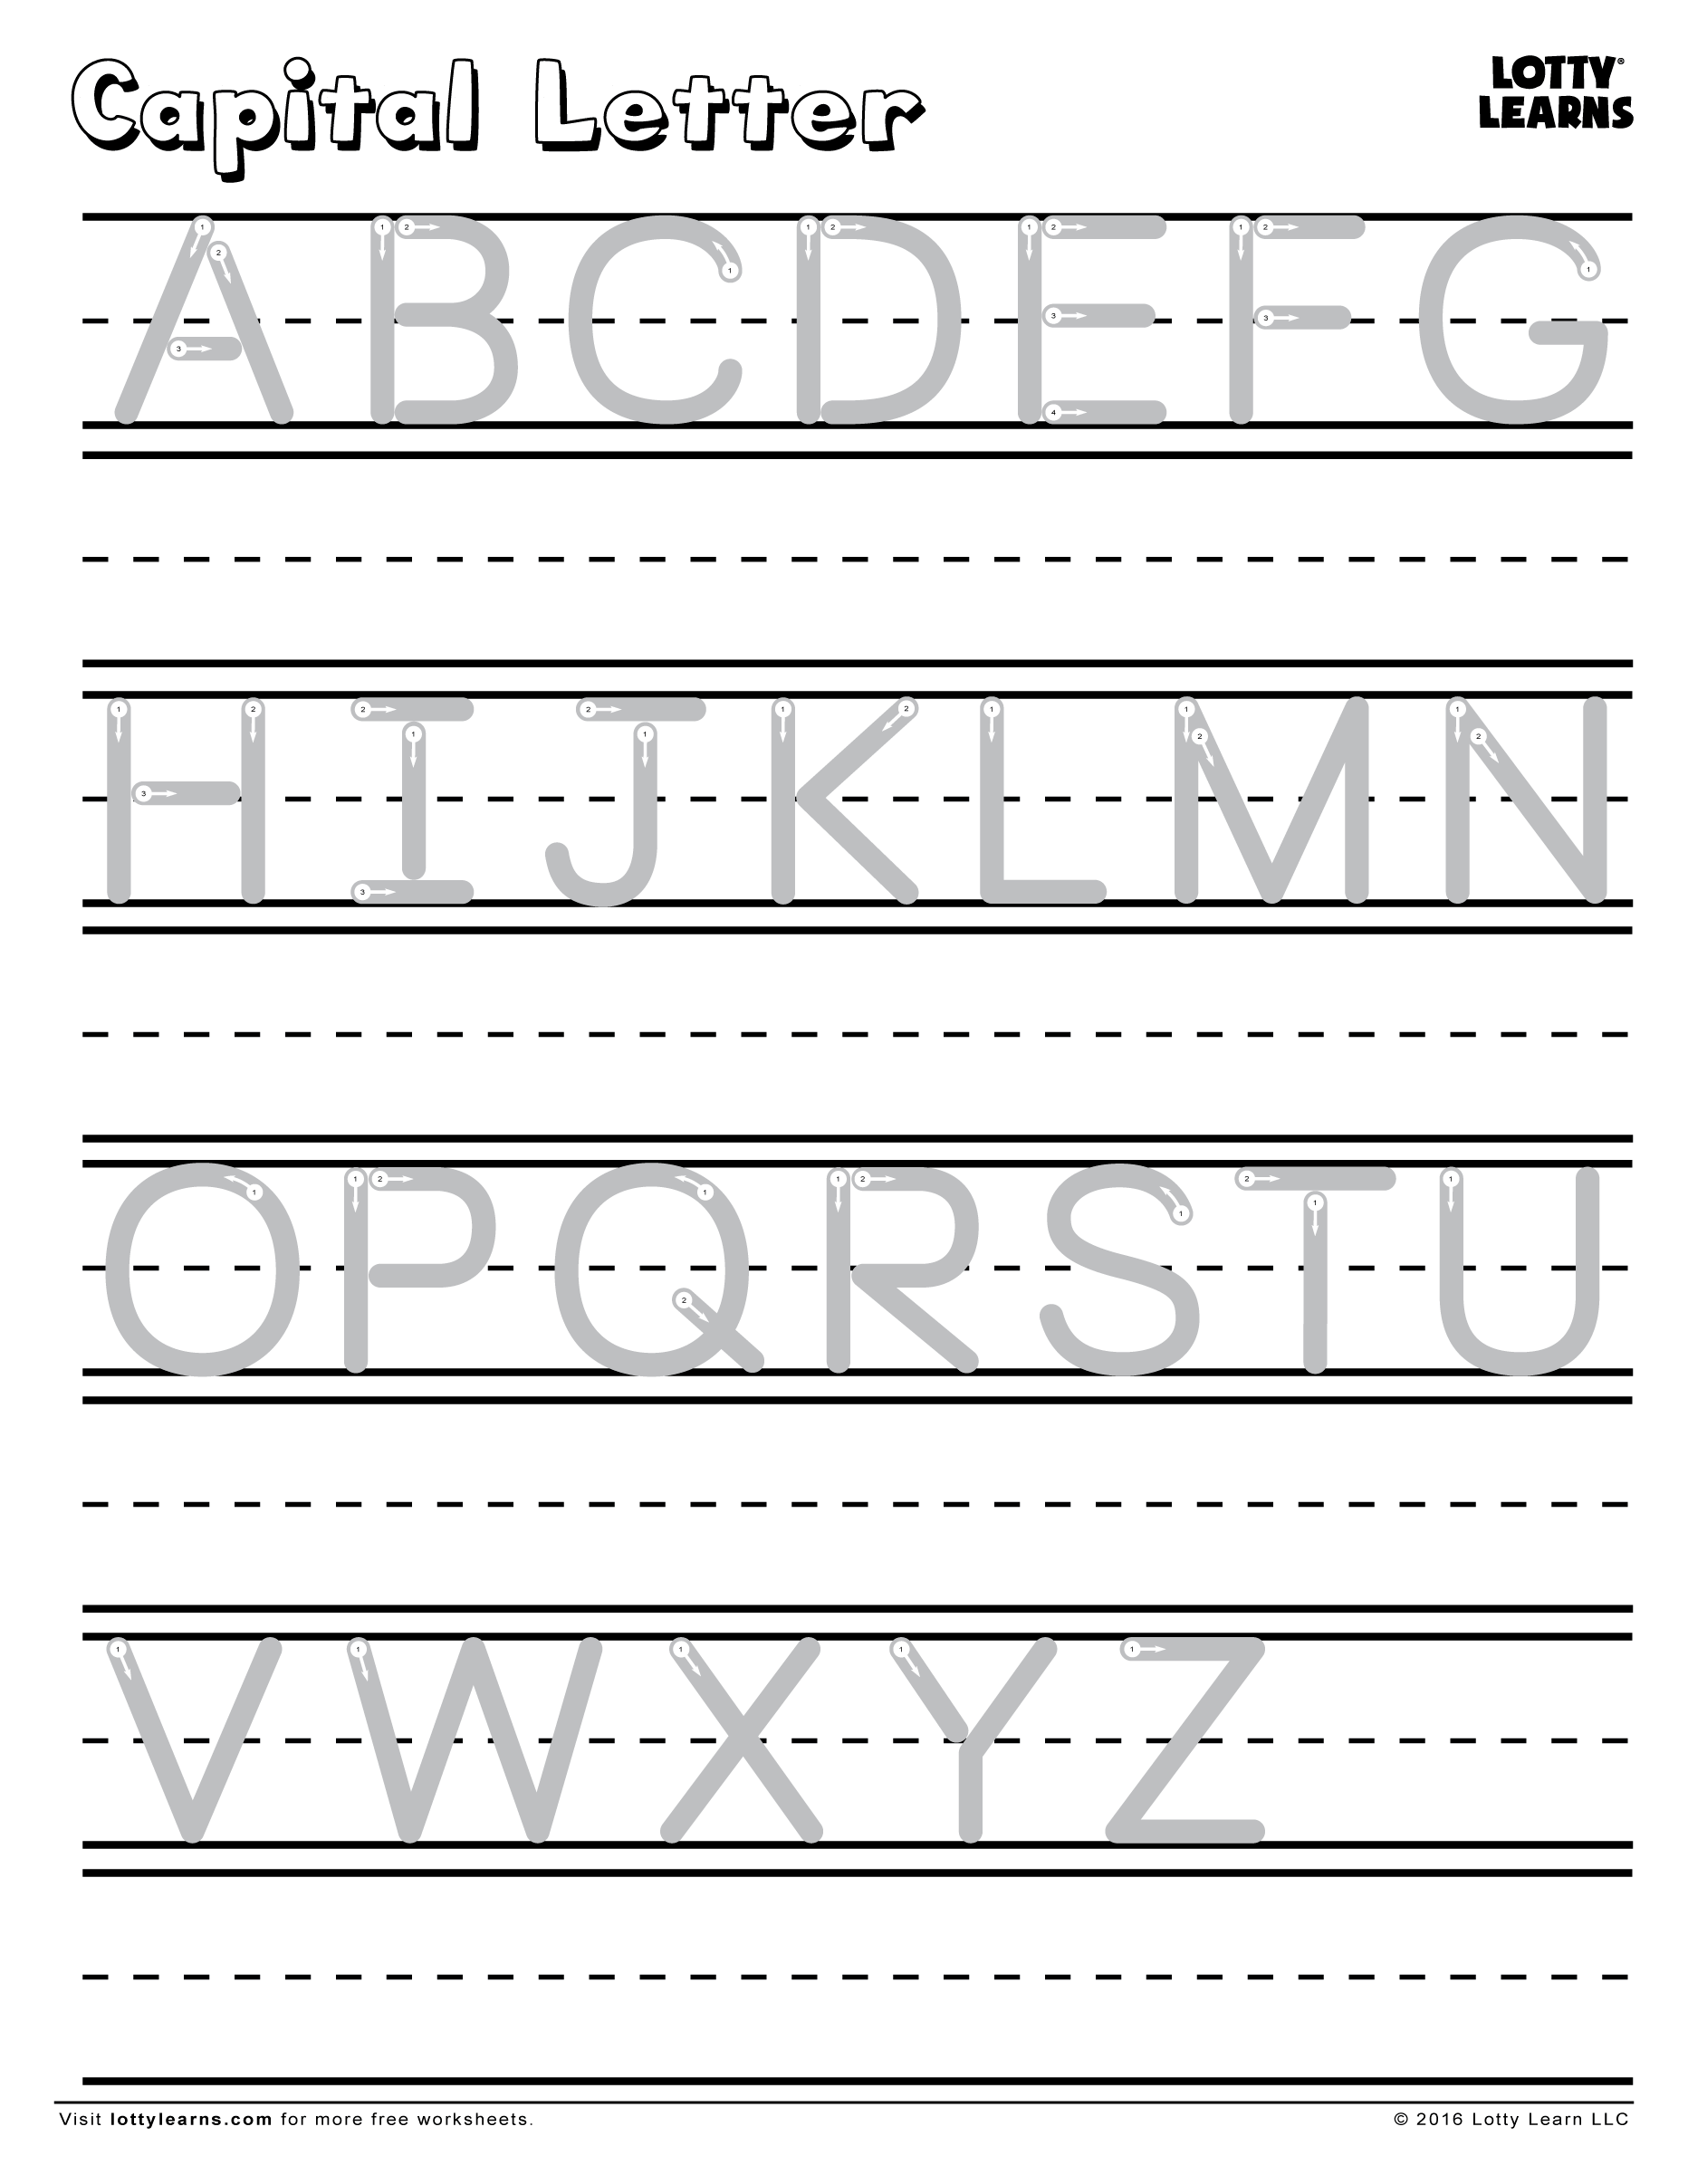 Capital Letter A-Z | Lotty Learns | Capital Letters with regard to Alphabet Worksheets For Kindergarten A To Z